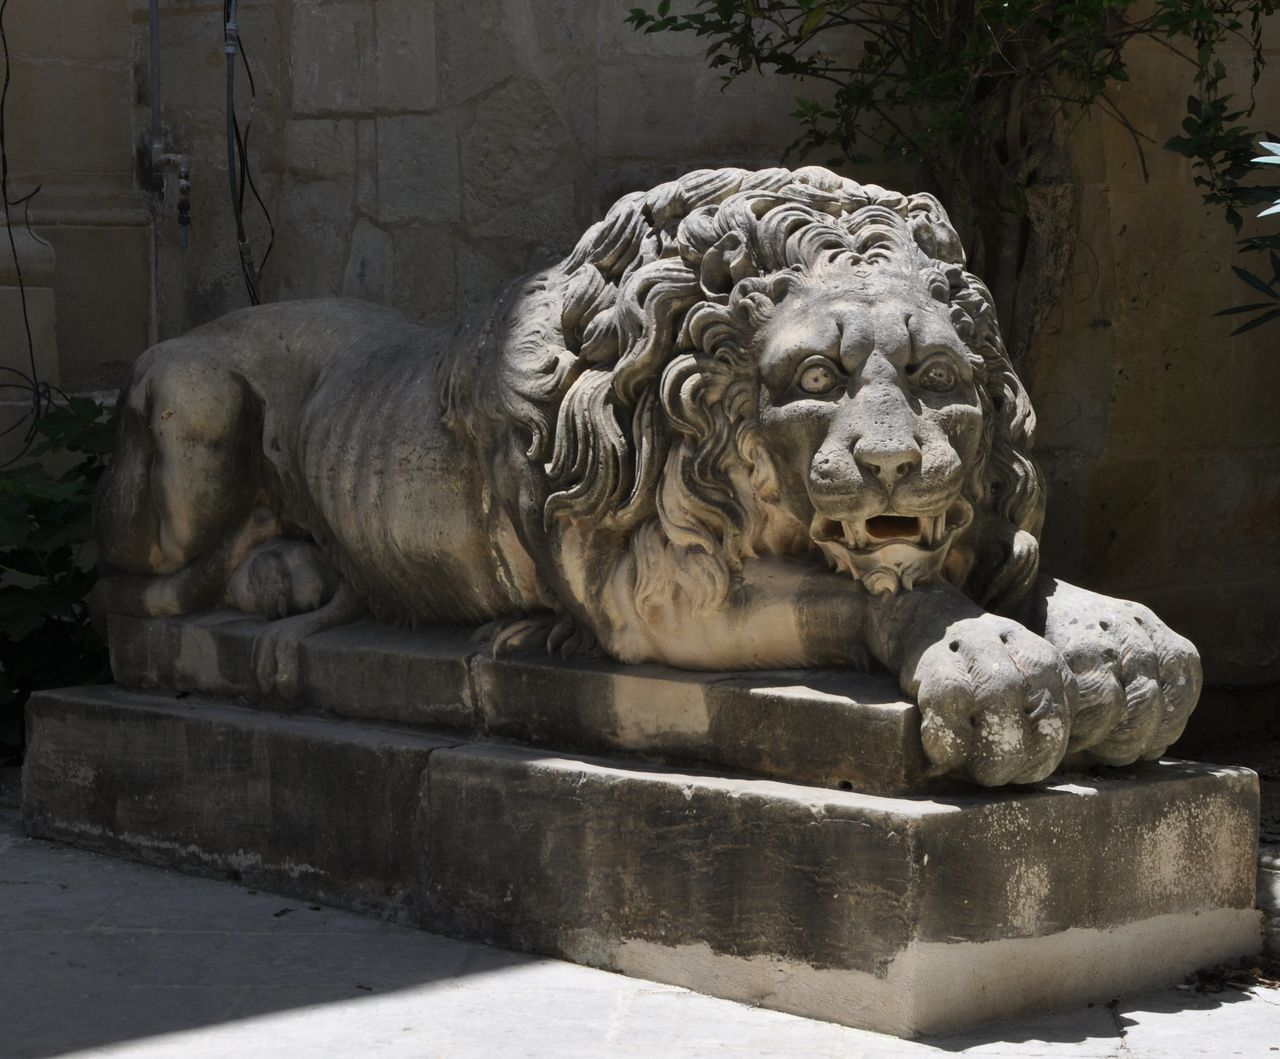 statue, sculpture, art and craft, craft, outdoors, day, no people, lion - feline, gargoyle, close-up